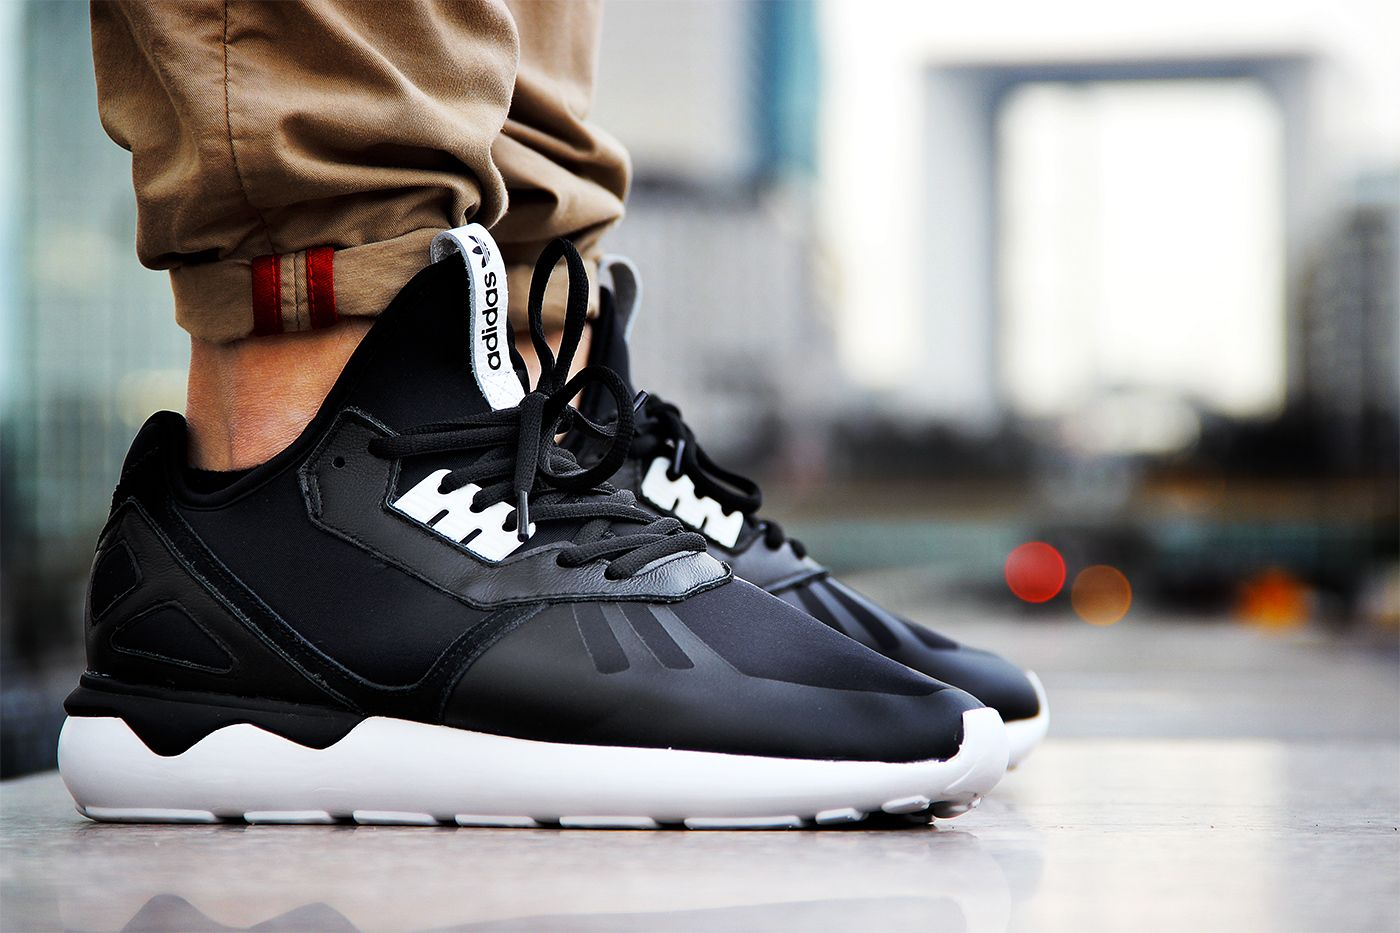 adidas NEWS STREAM : adidas Originals releases Tubular Runner